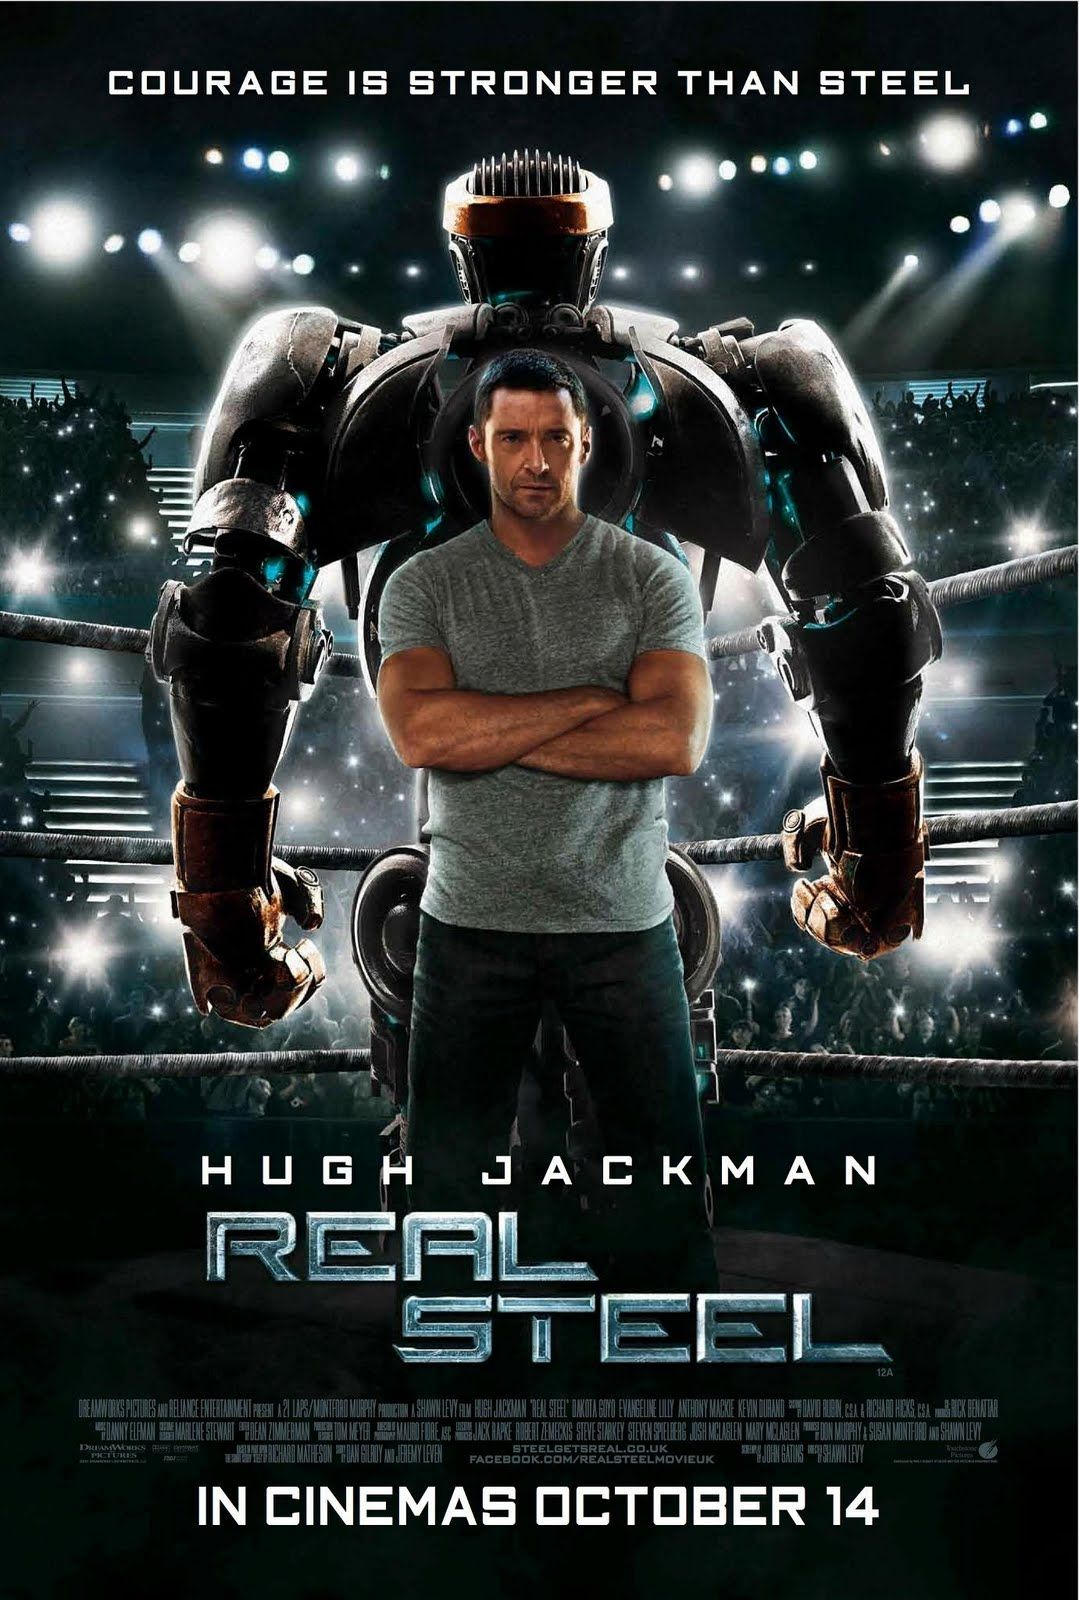 This Movie Has So Much Heart I Love It In 2021 Real Steel Full Movies Online Free Movie Posters